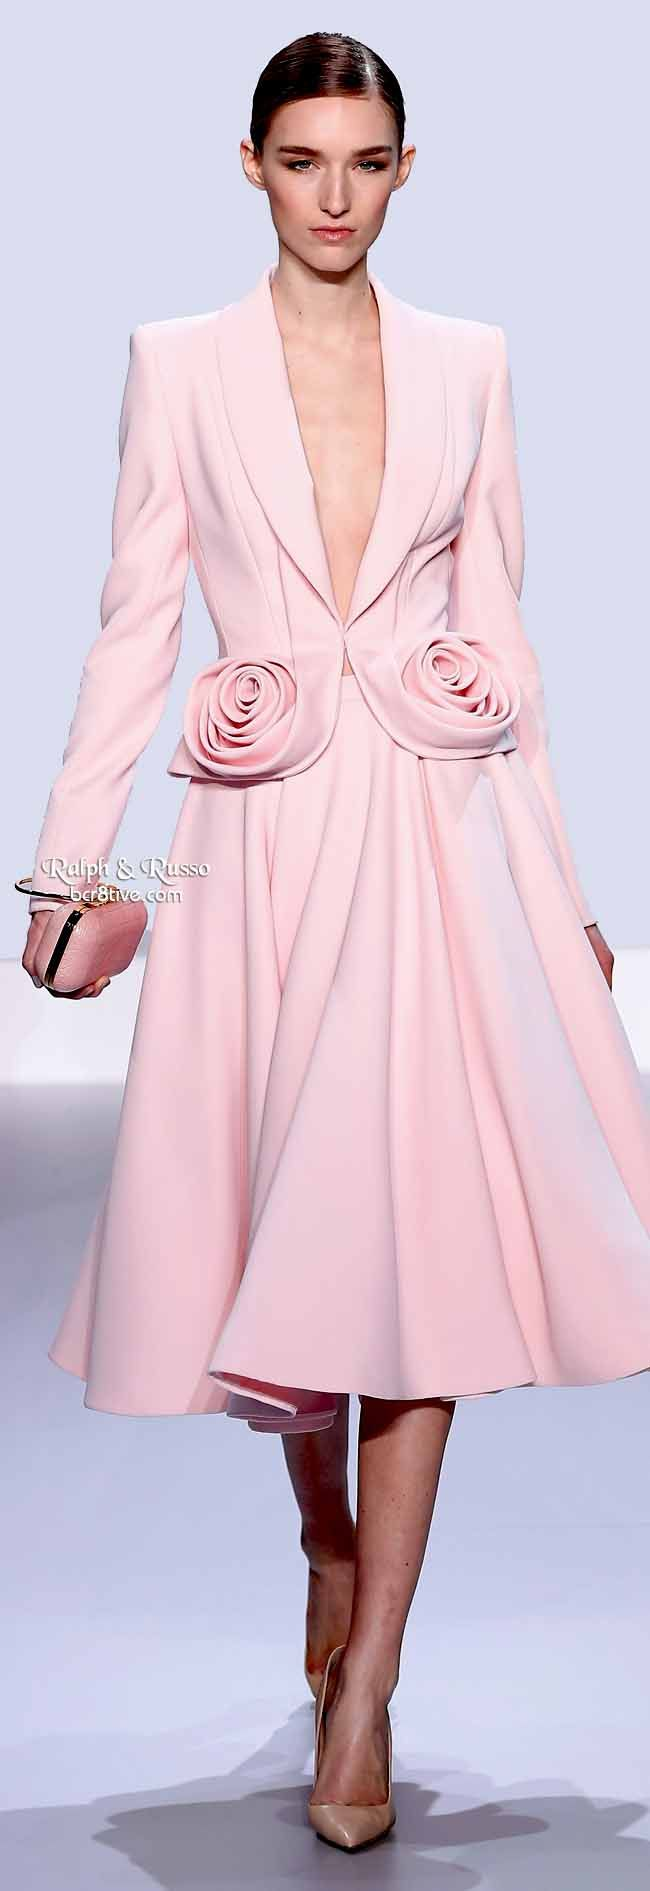 Ralph & Russo Spring 2014 HC | Pale pink silk wool jacket with rosette and flared skirt